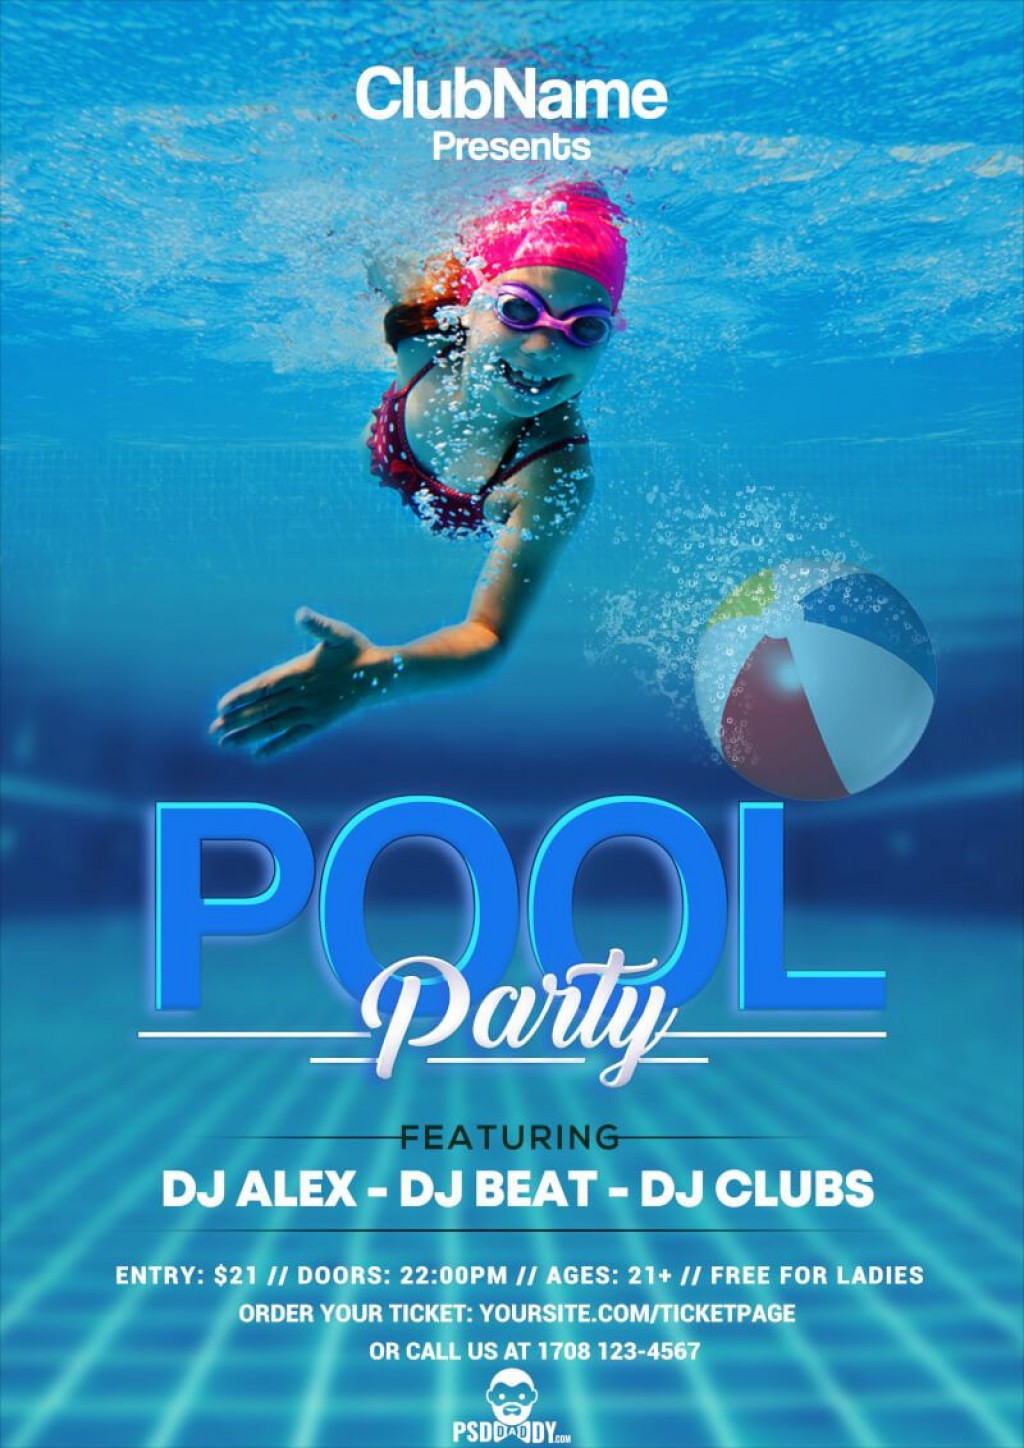 008 Wonderful Pool Party Flyer Template Free Image  Photoshop PsdLarge